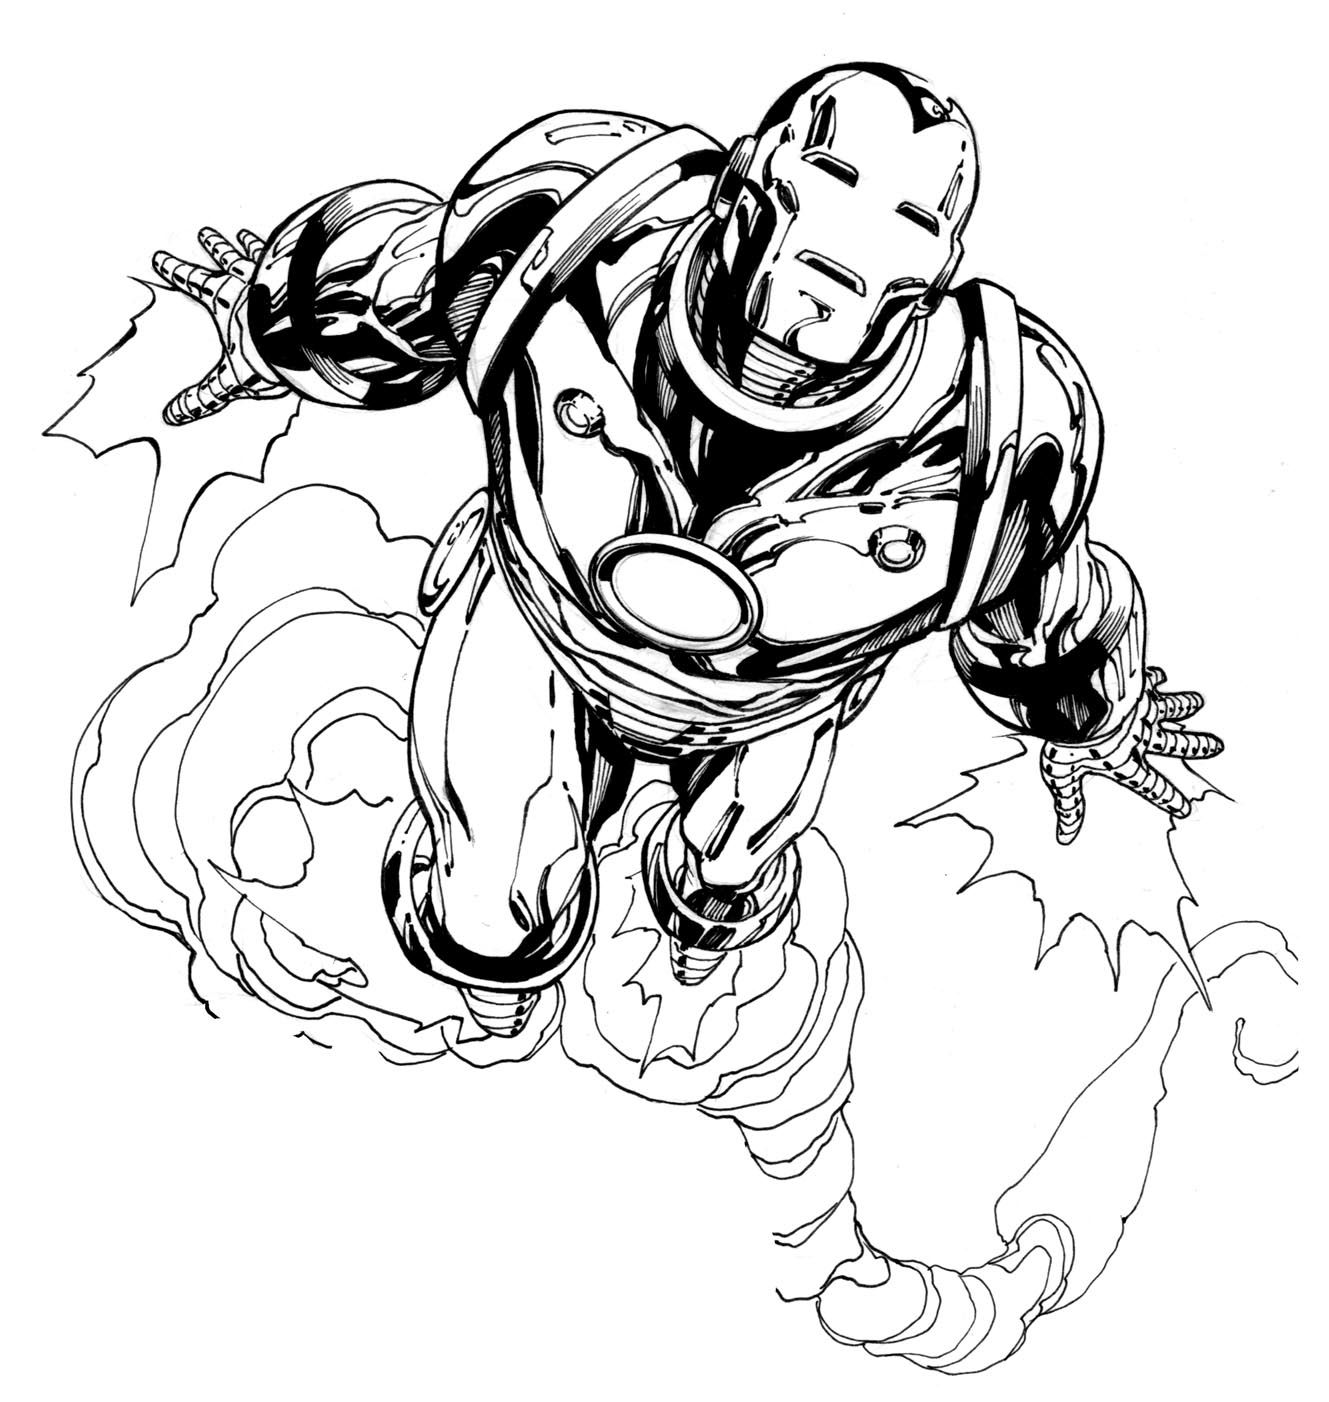 Coloring book pages avengers - Robert Atkins Art Avengers Iron Man Inks